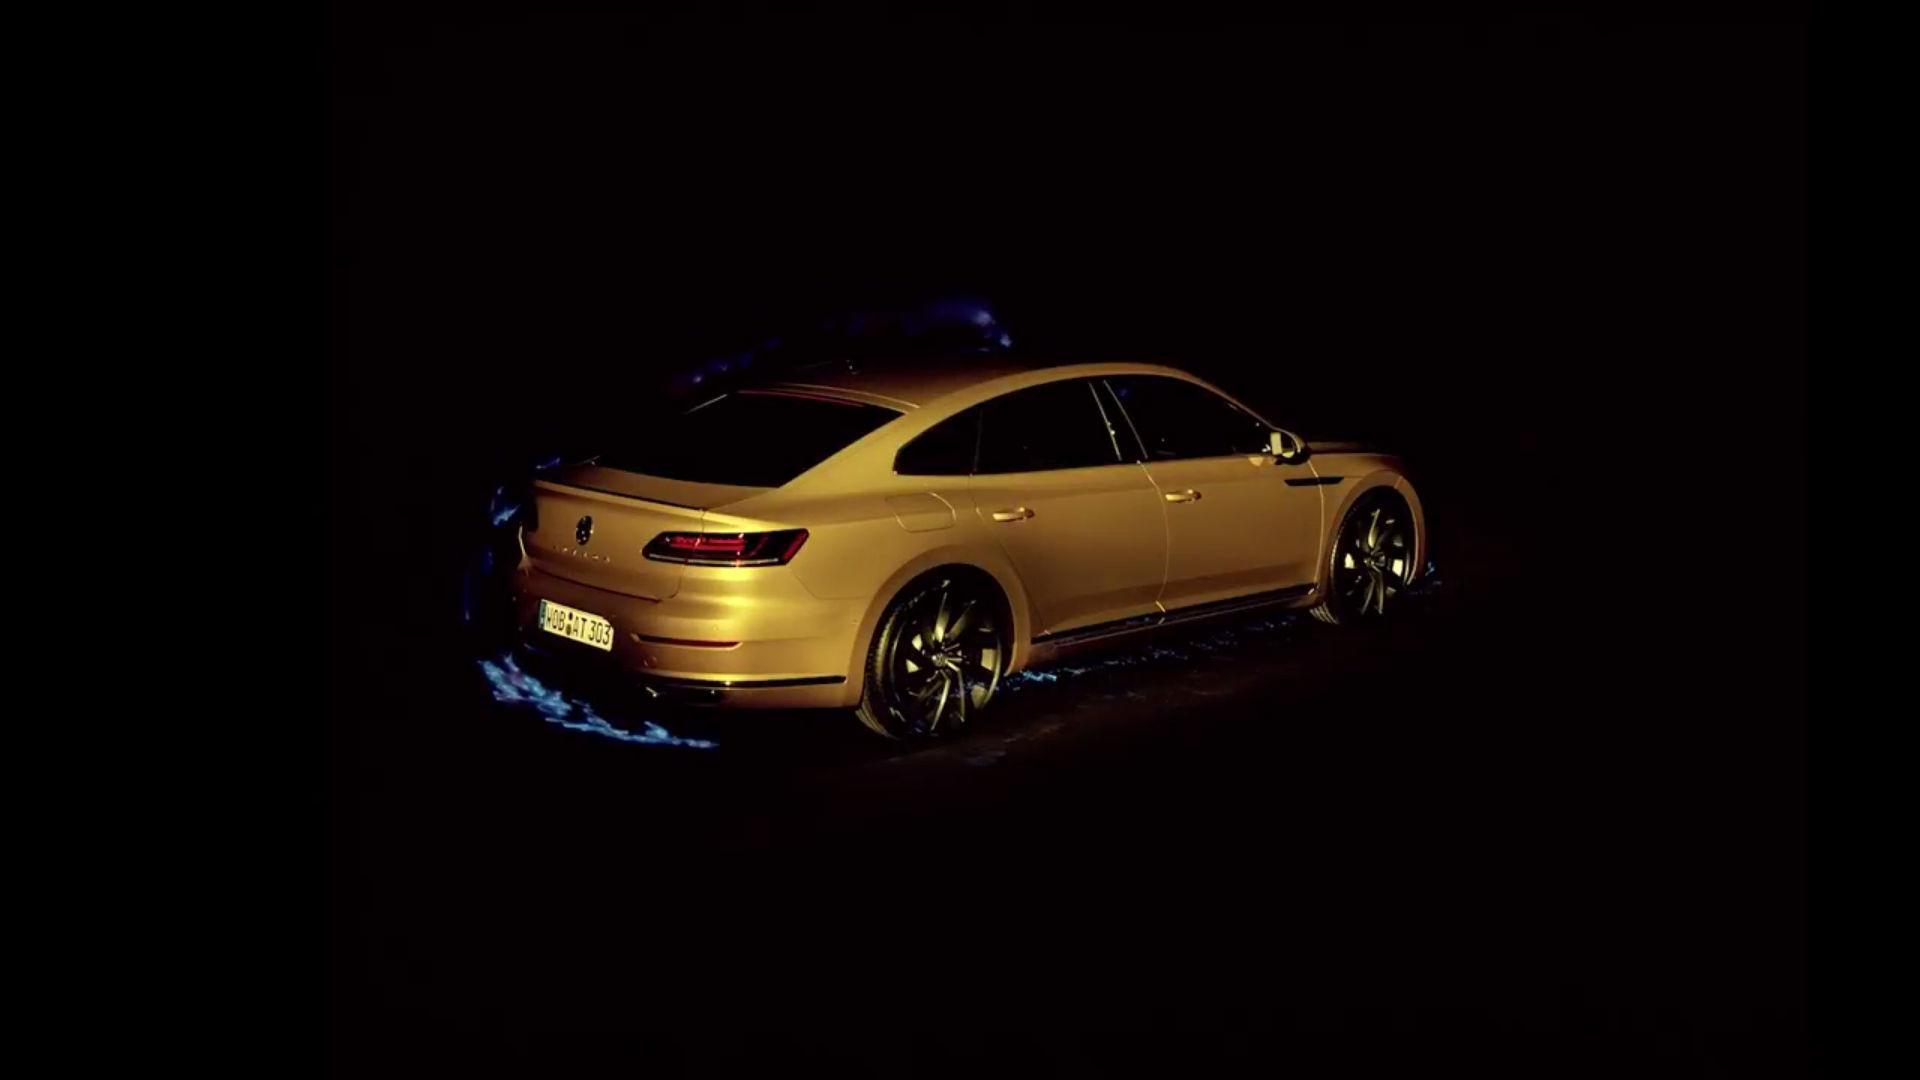 Volkswagen_Arteon_photoshoot_by_Pete_Eckert_07